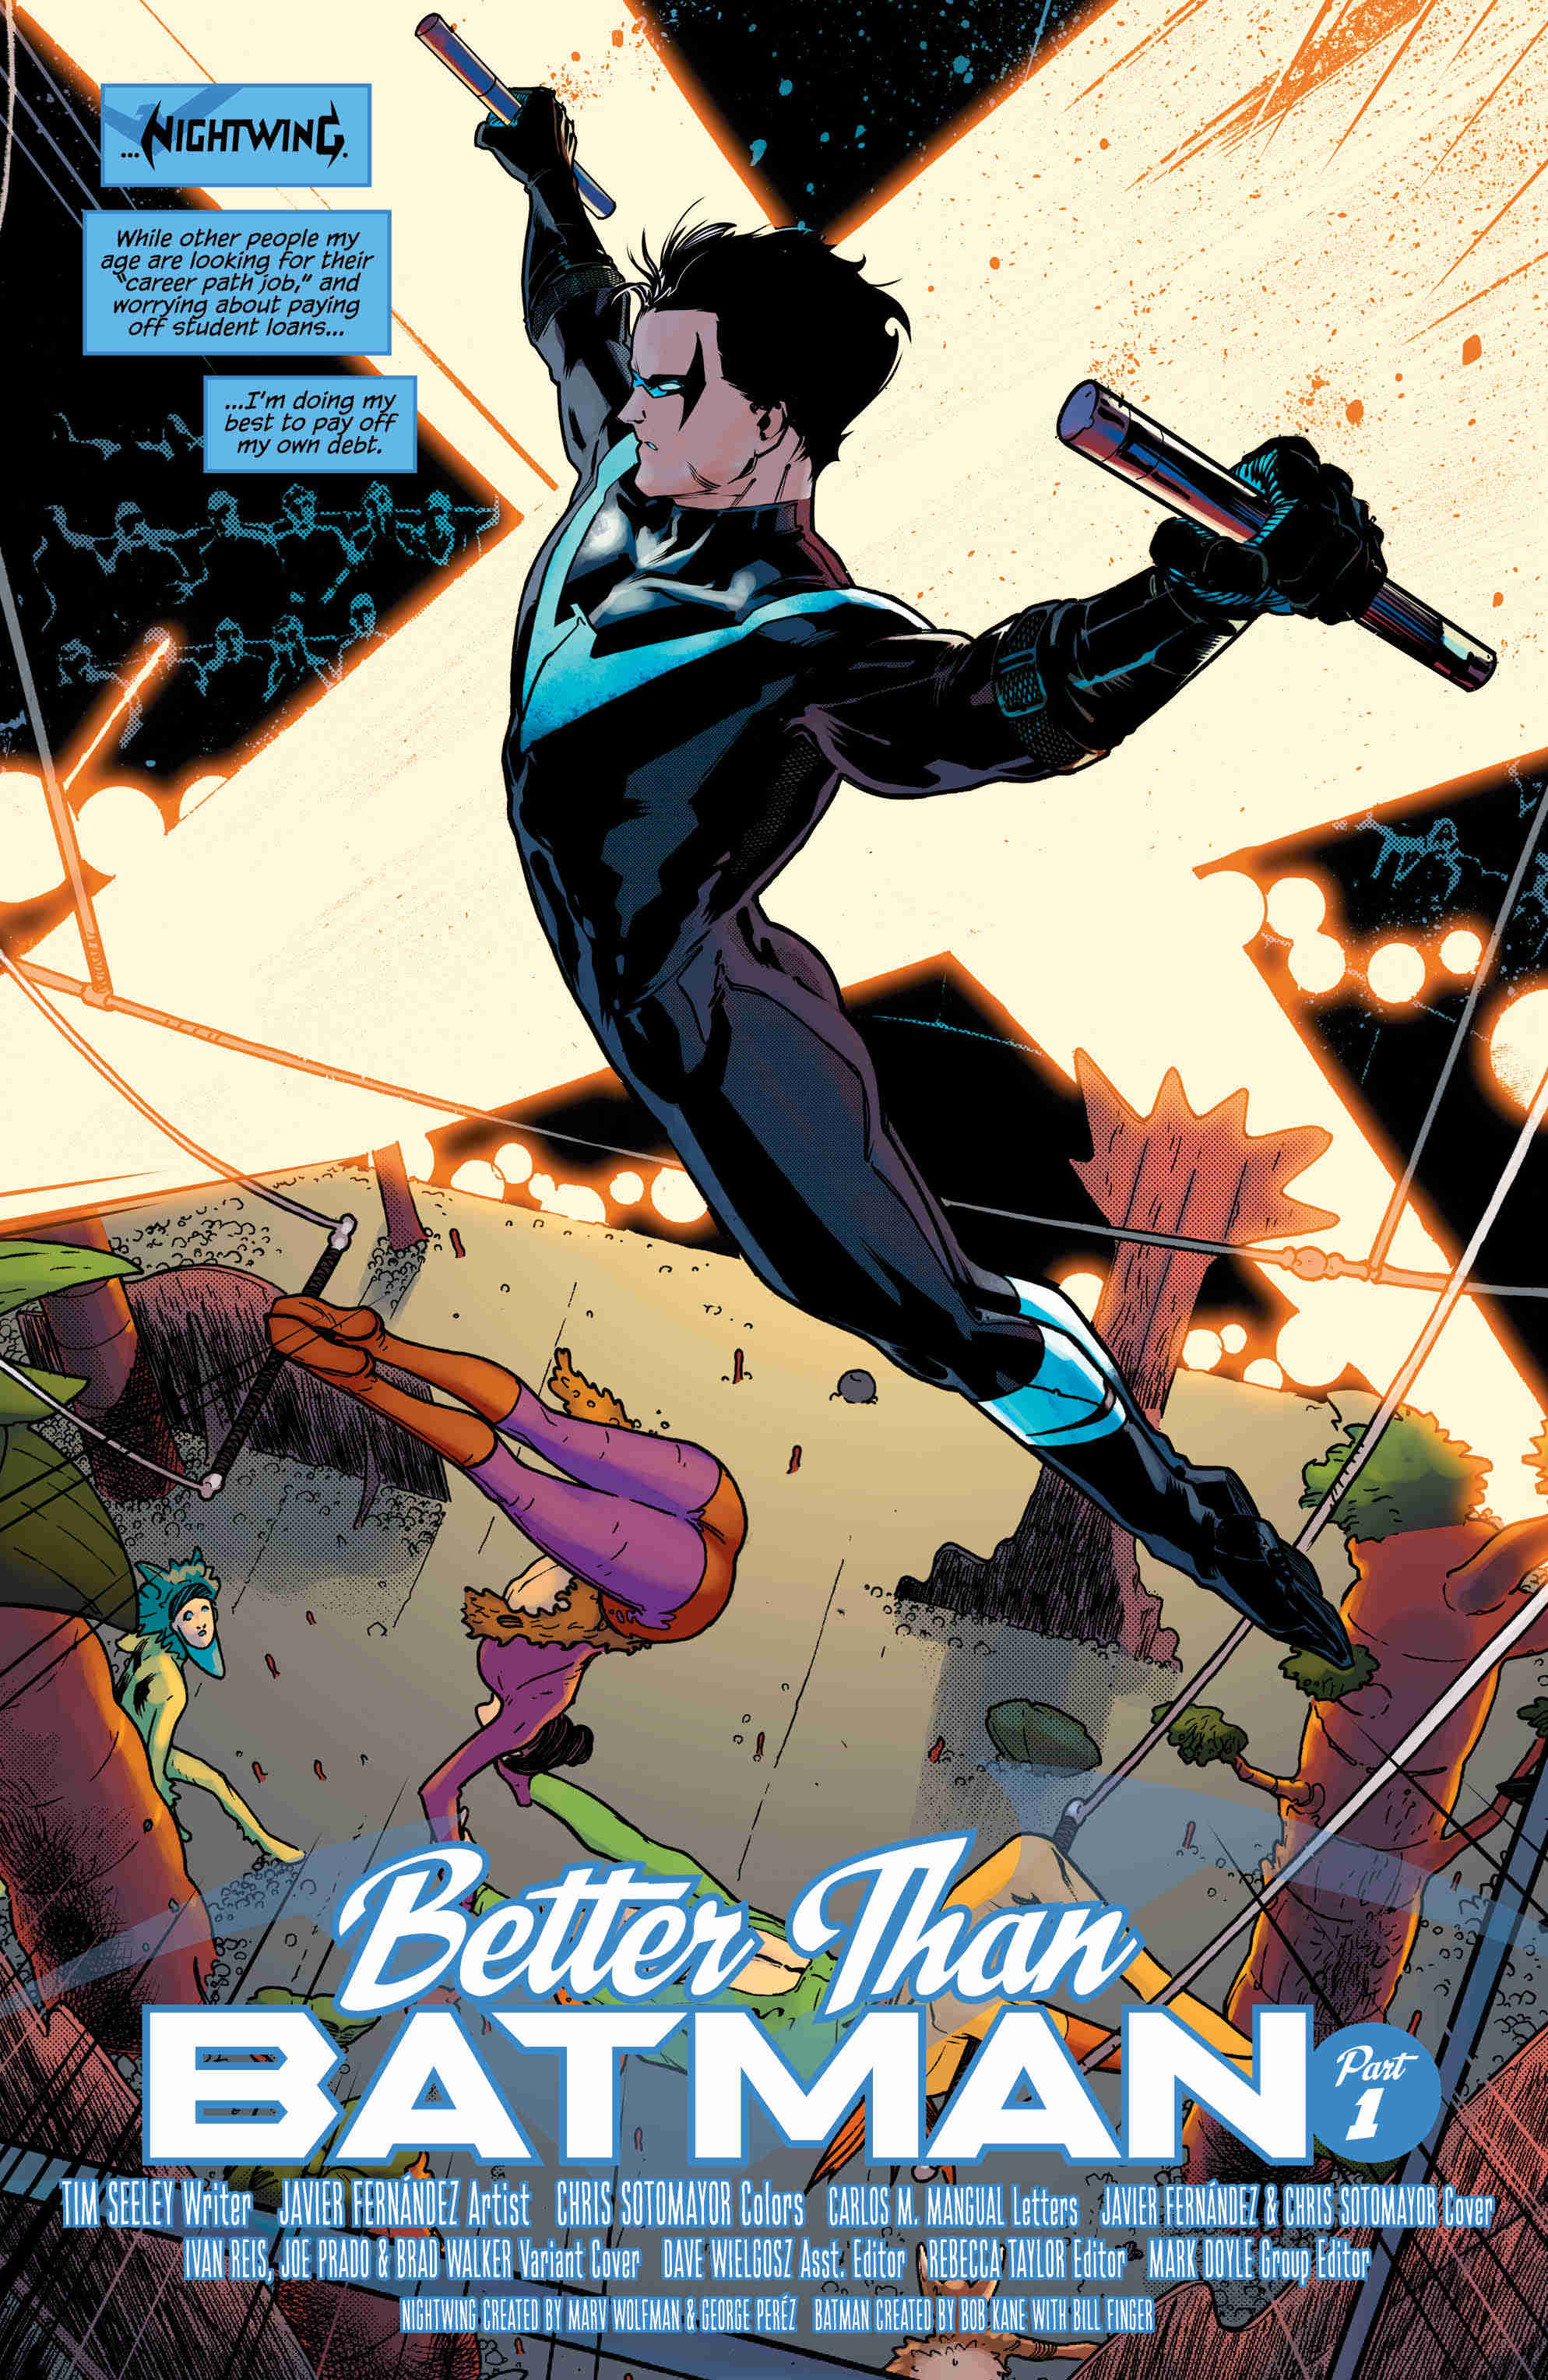 Nightwing Vol. 1: Better Than Batman Review